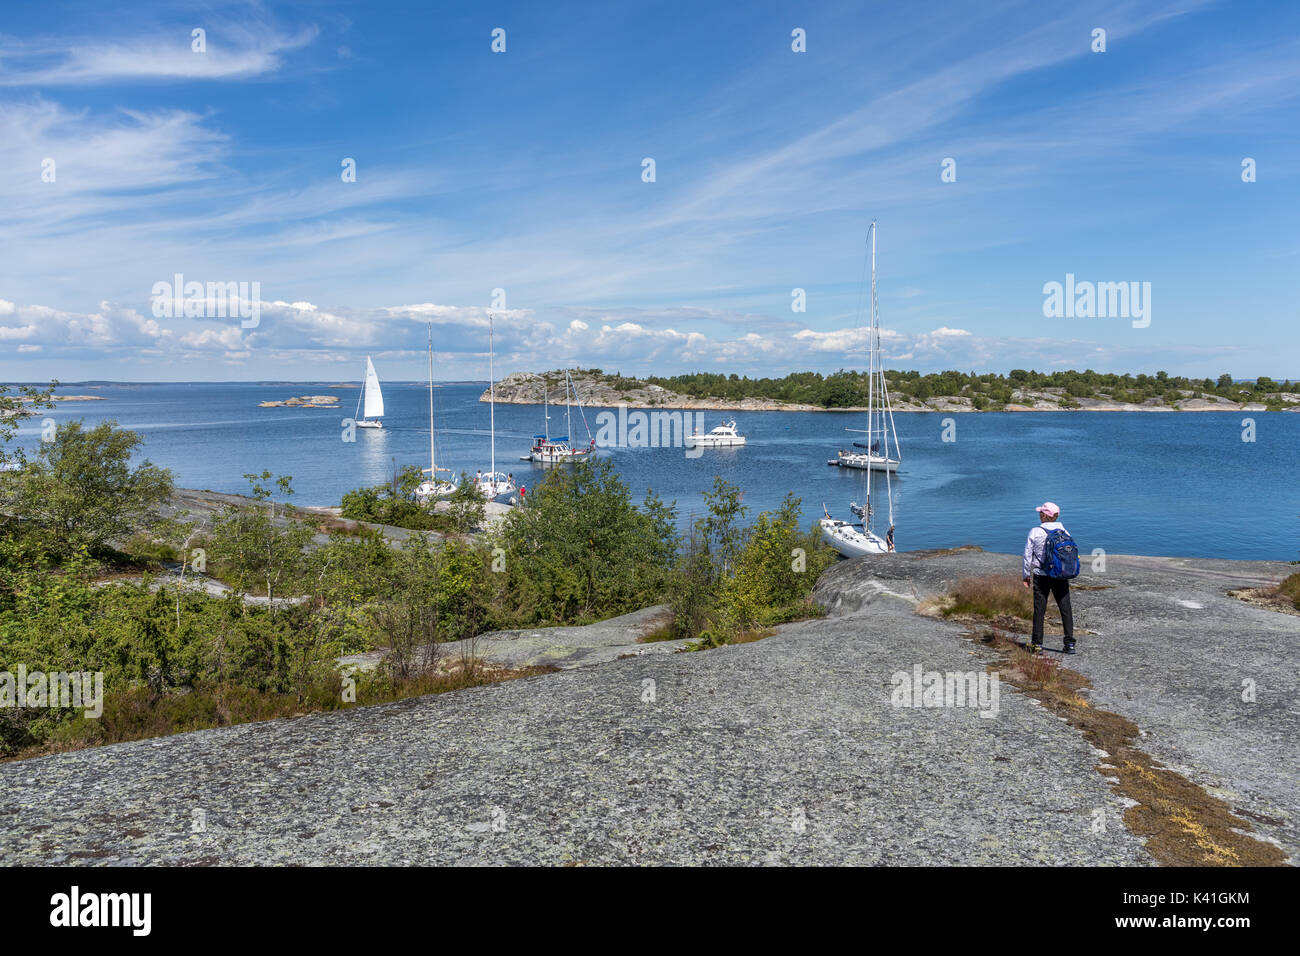 Sailboats anchored at an island in the outer reaches of the Stockholm archipelago - Stock Image